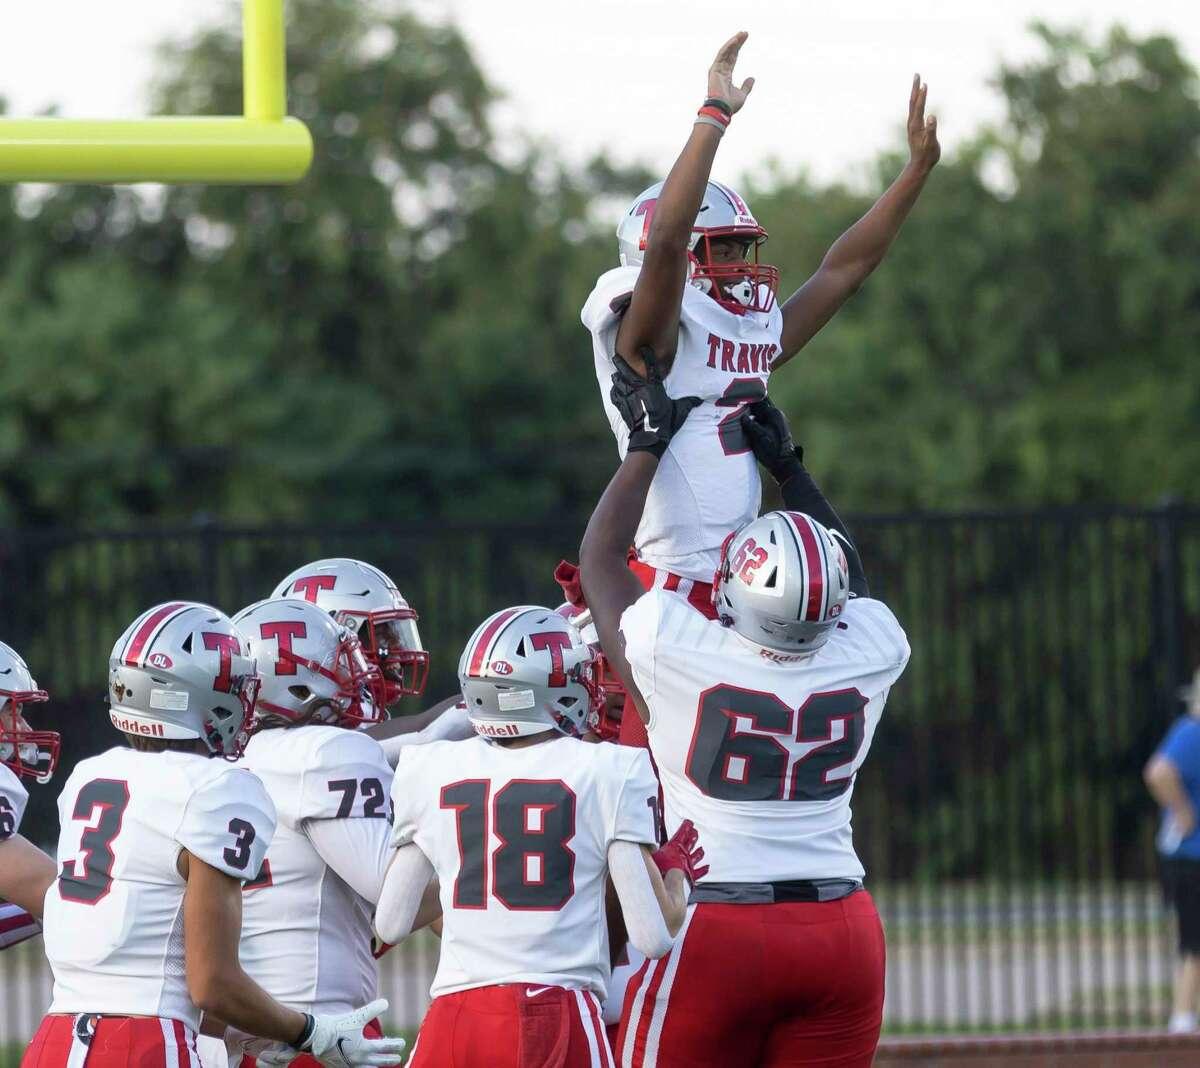 Travis quarterback Anthony Njoku (2) is lifted into the air by his teammates after he scores a touchdown during the first quarter of a non-district football game against Cypress Falls at Cy-Fair FCU Stadium, Saturday, Sept. 11, 2021, in Cypress.